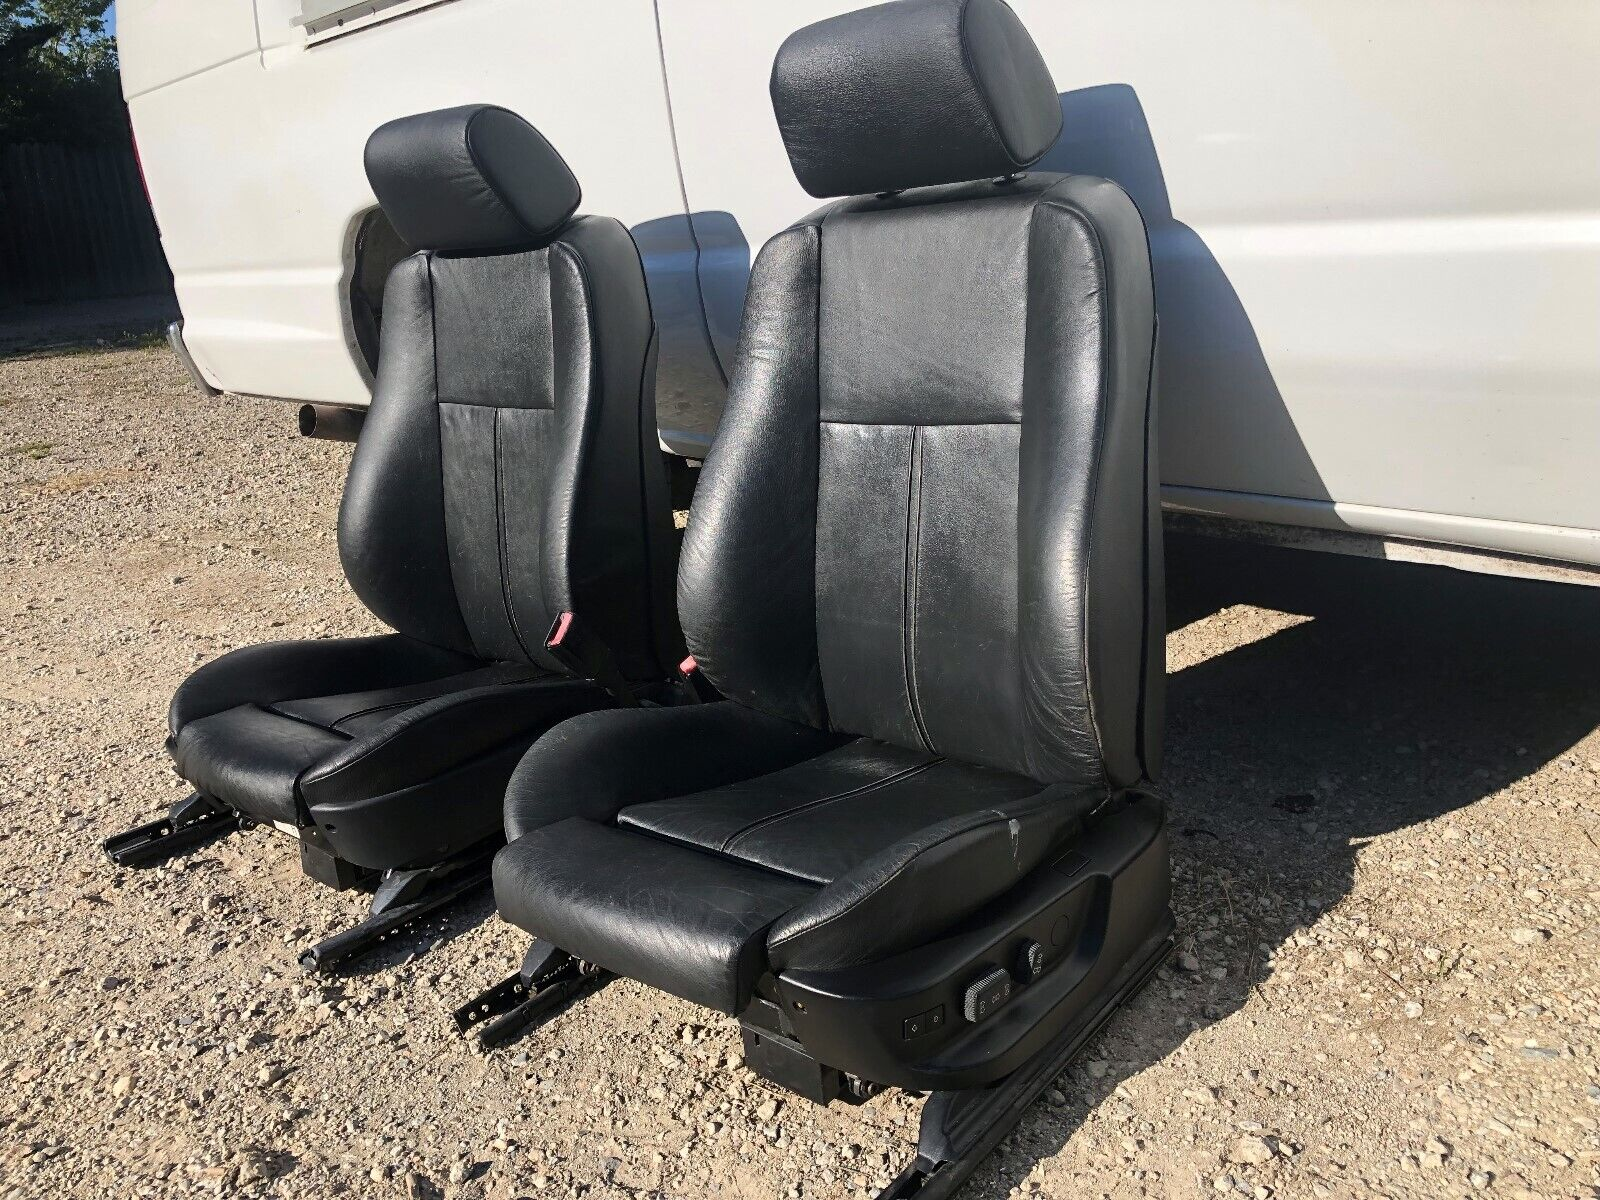 1999 2003 Bmw E39 Sport Oem Seat Seats 540i 525i 530i 528i E38 740i 740il Heated For Sale Online